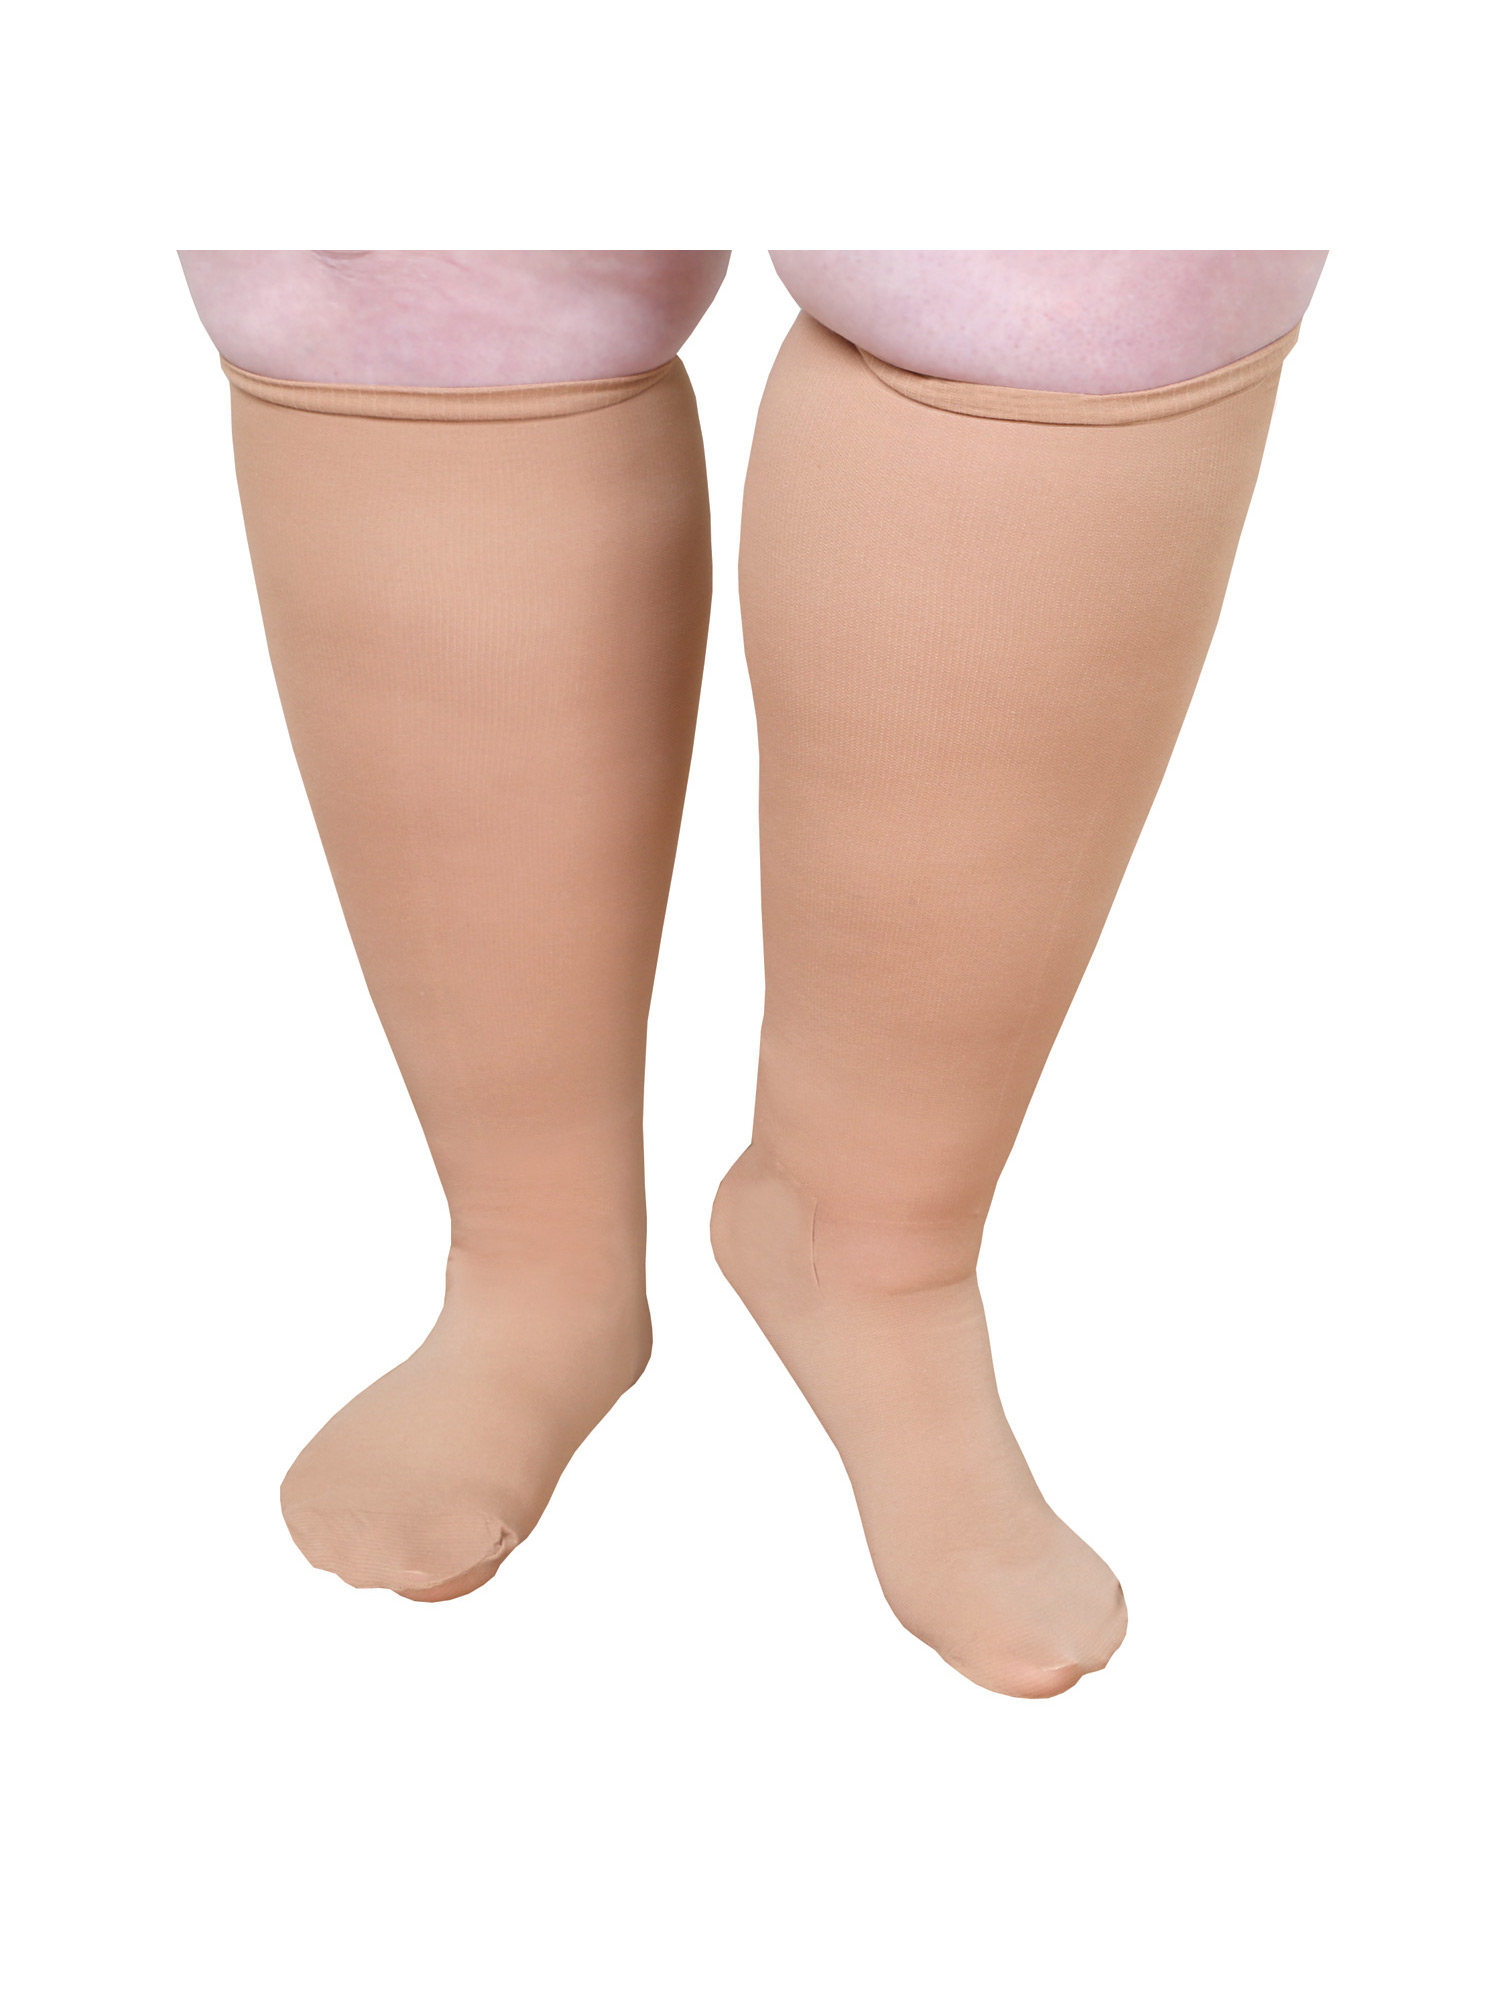 "Unisex Extra Wide Moderate Compression Knee High Socks -Up to XW / 4E & 26"" Calf"